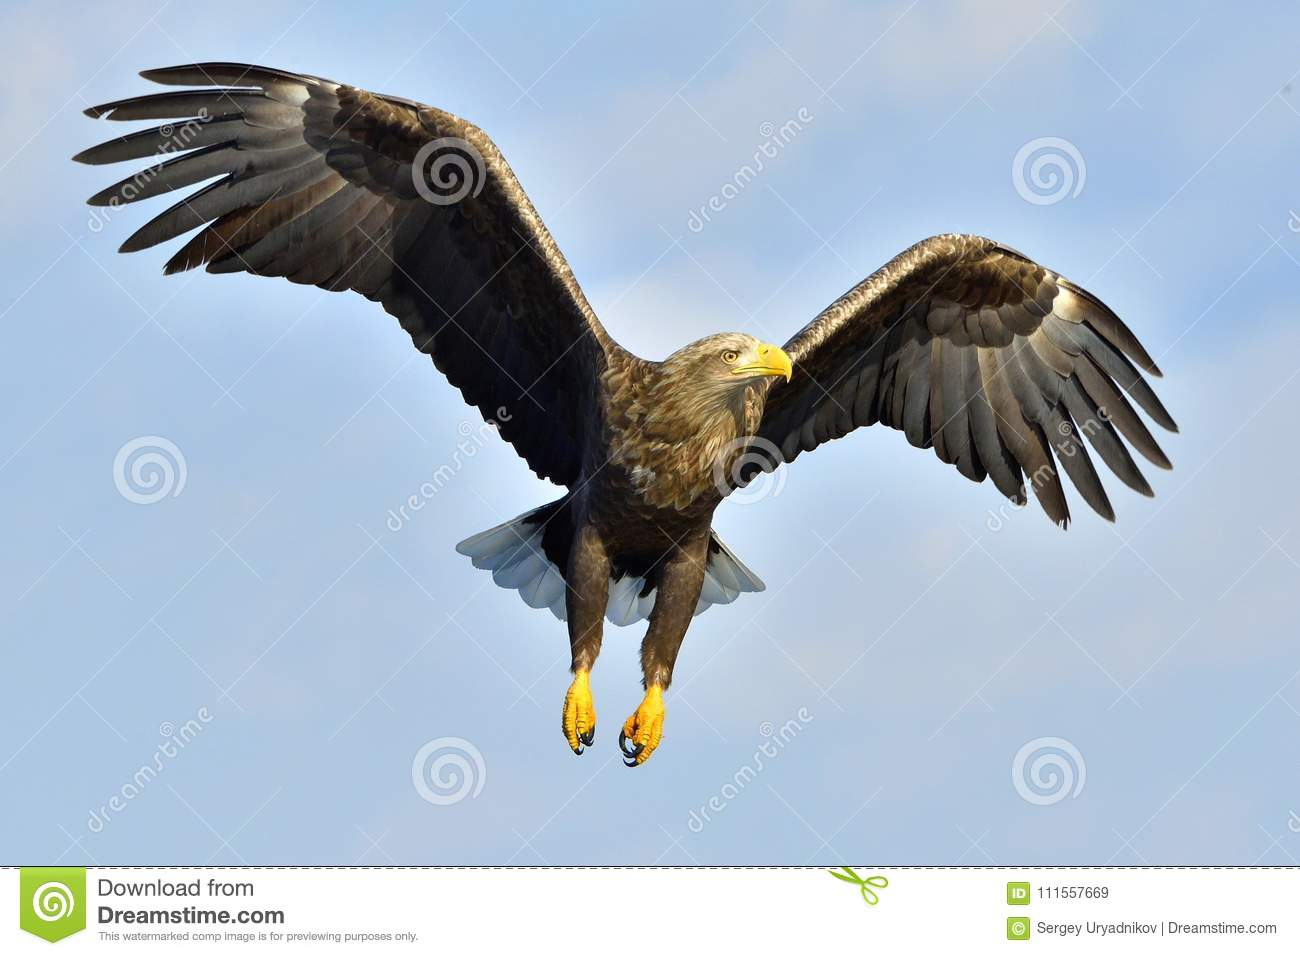 White-tailed eagle in flight, fishing. Adult white-tailed eagle Haliaeetus albicilla, also known as the ern, erne, gray eagle, E